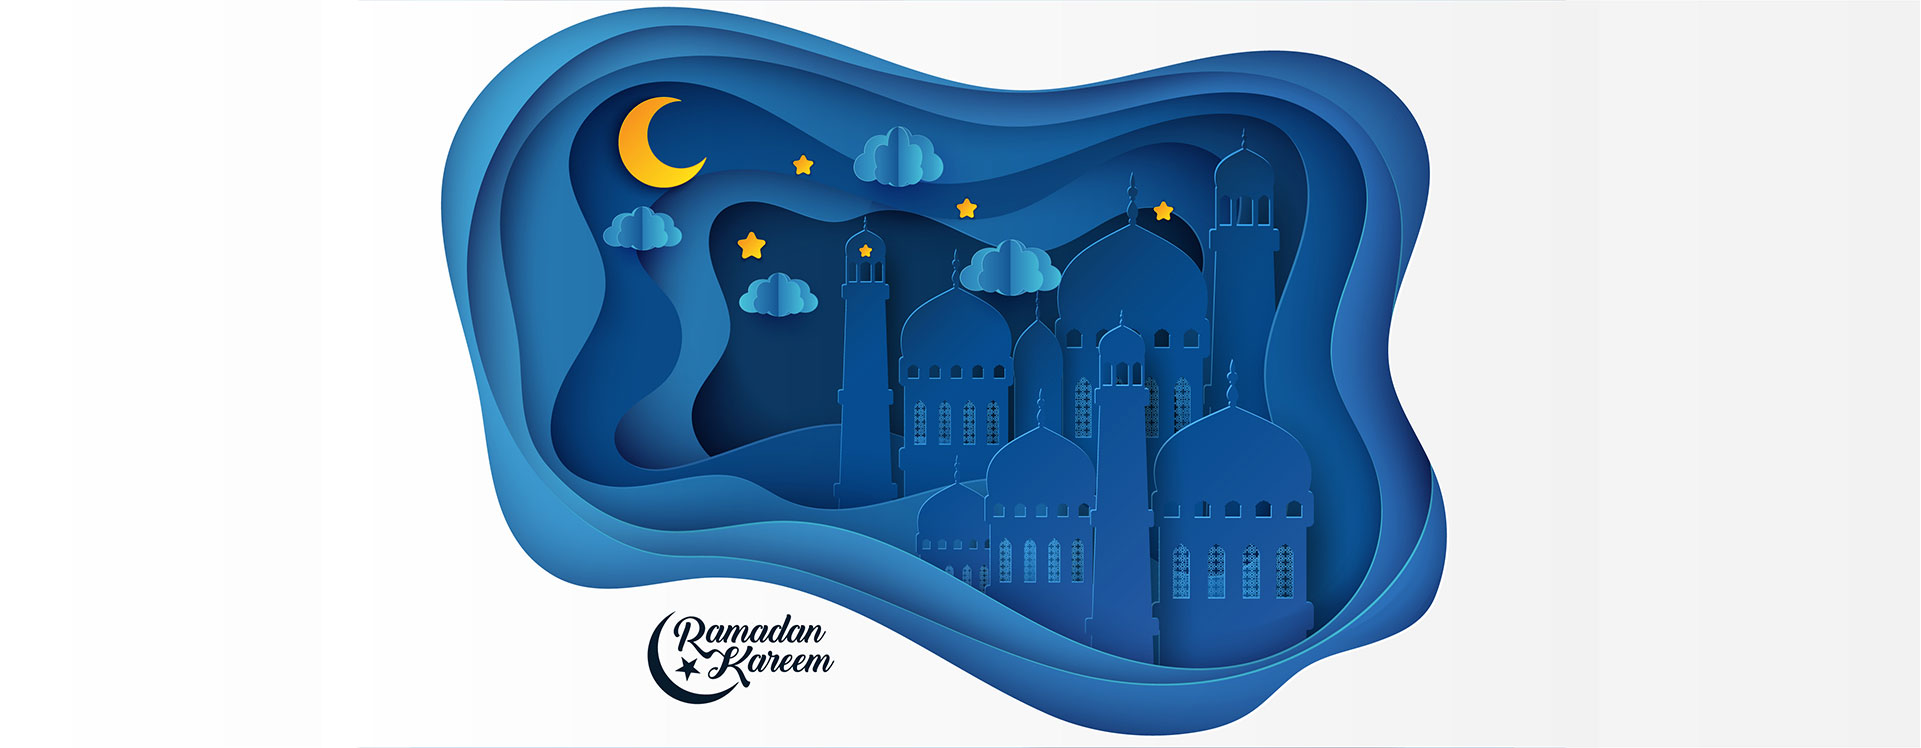 SHURA WISHES YOU A BLESSED RAMADAN KAREEM